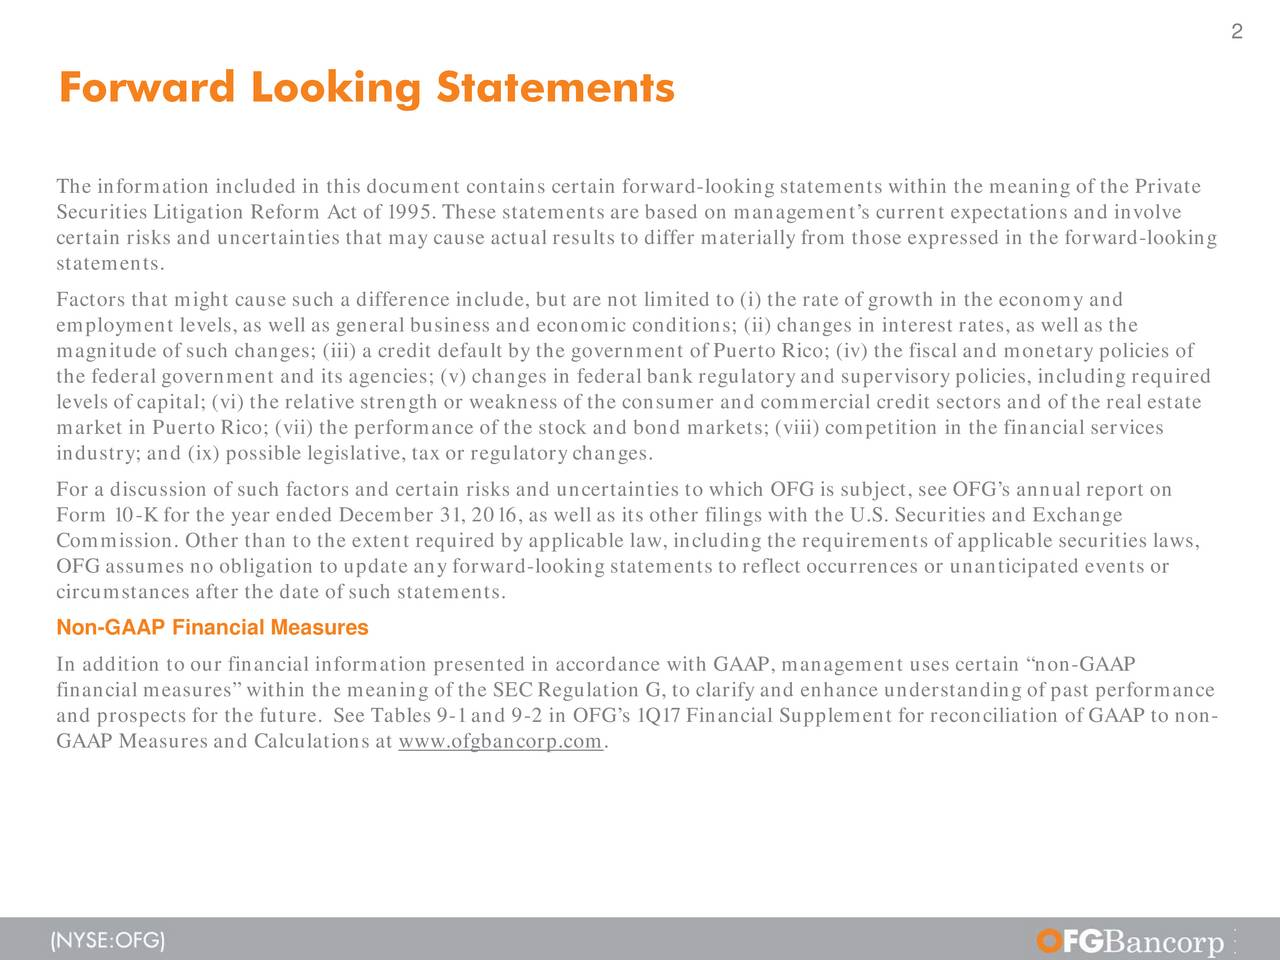 Forward Looking Statements The information included in this document contains certain forward-looking statements within the meaning of the Private Securities Litigation Reform Act of 1995. These statements are based on managements current expectations and involve certain risks and uncertainties that may cause actual results to differ materially from those expressed in the fo-looking statements. Factors that might cause such a difference include, but are not limited to (i) the rate of growth in the economy and employment levels, as well as general business and economic conditions; (ii) changes in interest rates, as well as the magnitude of such changes; (iii) a credit default by the government of Puerto Rico; (iv) the fiscal and monetary policies of the federal government and its agencies; (v) changes in federal bank regulatory and supervisory policies, including required levels of capital; (vi) the relative strength or weakness of the consumer and commercial credit sectors and of the realtestae market in Puerto Rico; (vii) the performance of the stock and bond markets; (viii) competition in the financial services industry; and (ix) possible legislative, tax or regulatory changes. For a discussion of such factors and certain risks and uncertainties to which OFG is subject, see OFGs annual report on Form 10-K for the year ended December 31, 2016, as well as its other filings with the U.S. Securities and Exchange Commission. Other than to the extent required by applicable law, including the requirements of applicable securities laws, OFG assumes no obligation to update any forward-looking statements to reflect occurrences or unanticipated events or circumstances after the date of such statements. Non-GAAP Financial Measures In addition to our financial information presented in accordance with GAAP, management uses certain non-GAAP financial measures within the meaning of the SEC Regulation G, to clarify and enhance understanding of past performance and prospects for th